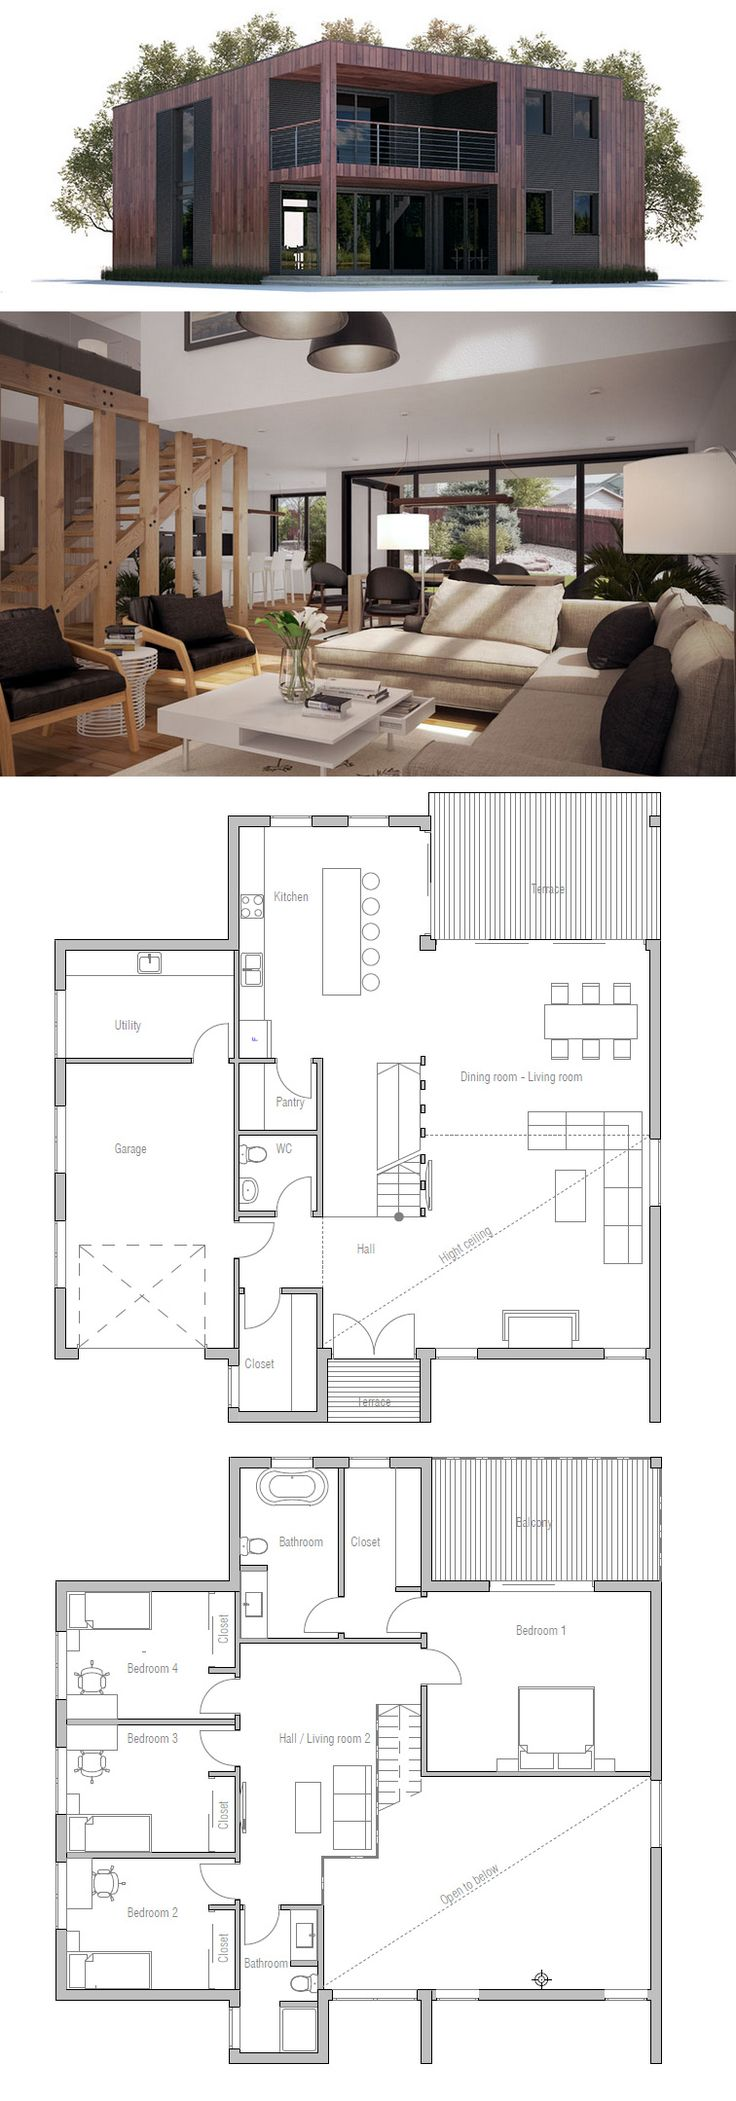 House Plan I really like this one